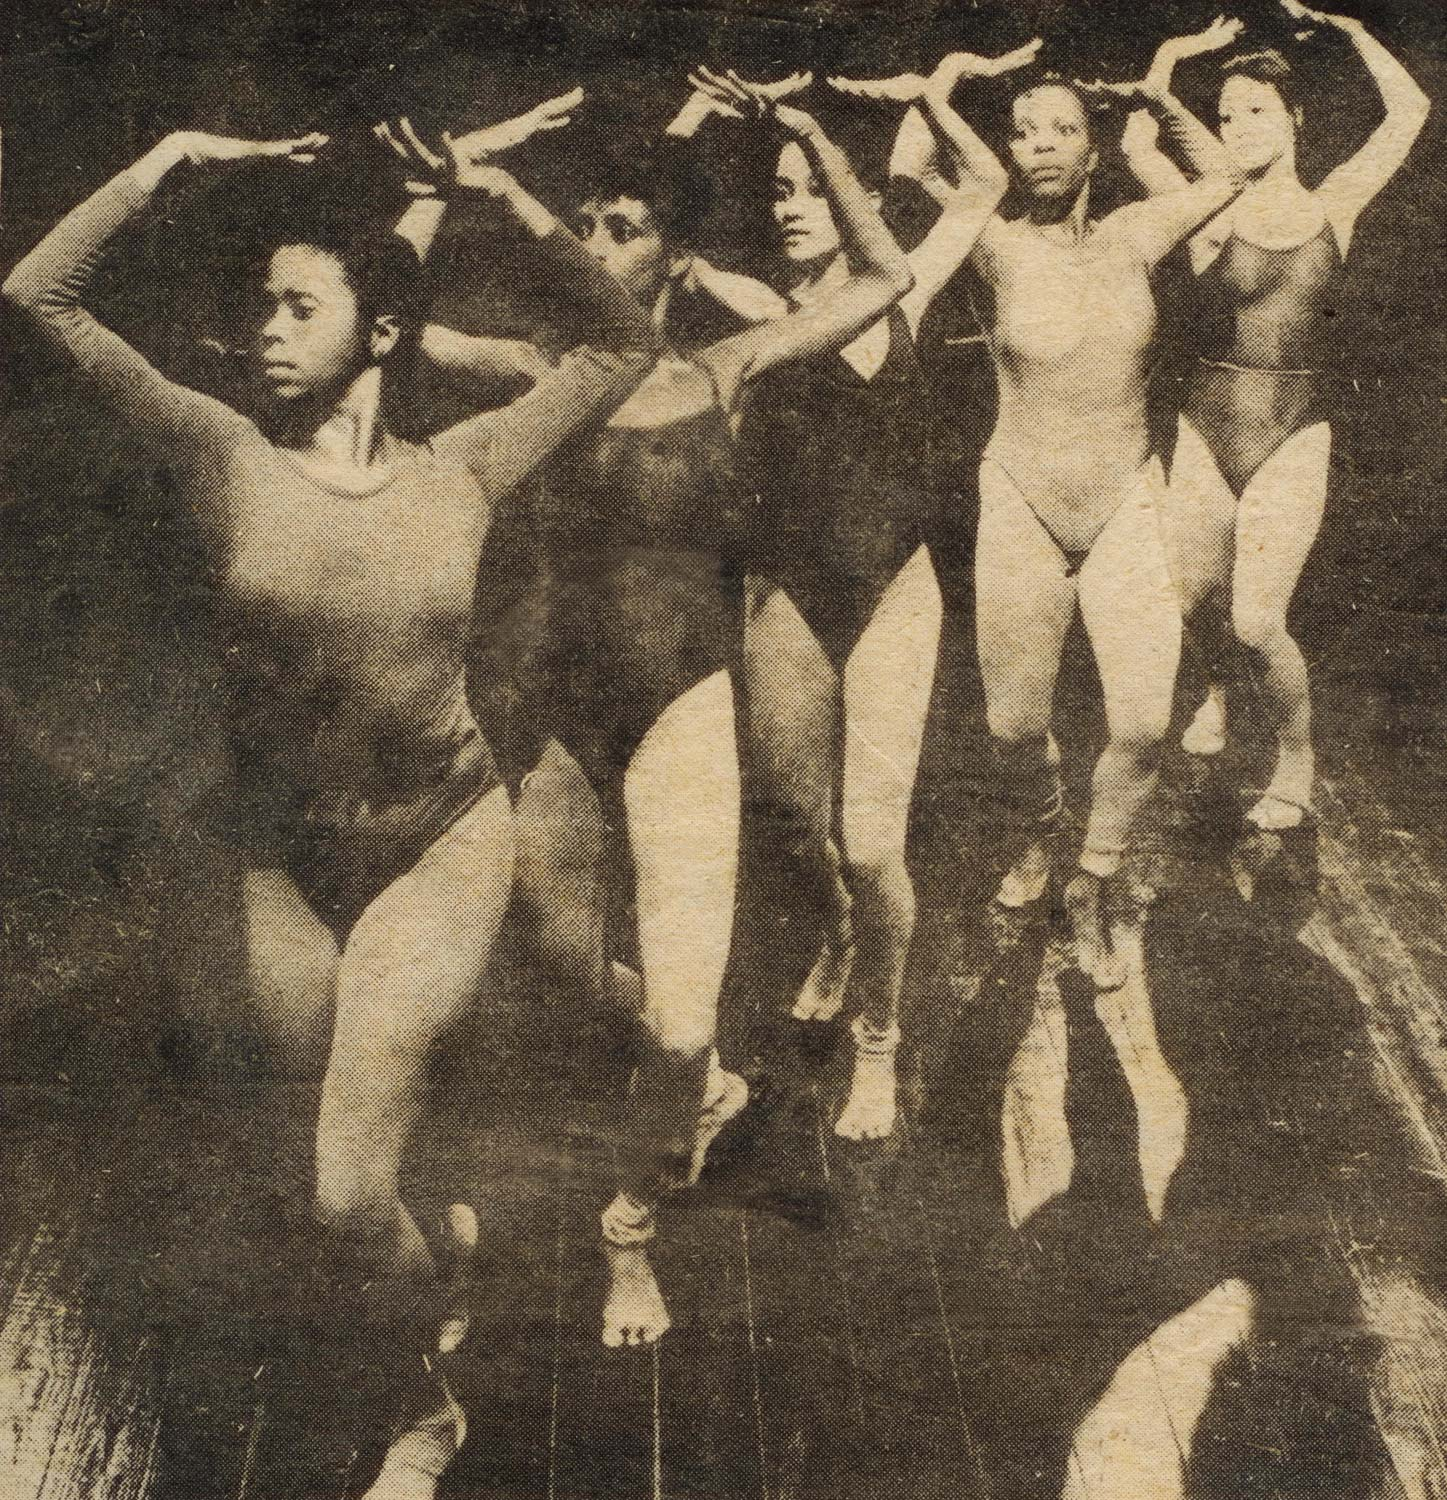 Douglas (left) leads her dancers in a rehearsal of Lament for Women Only, 1980. Photograph courtesy Adèle Bynoe